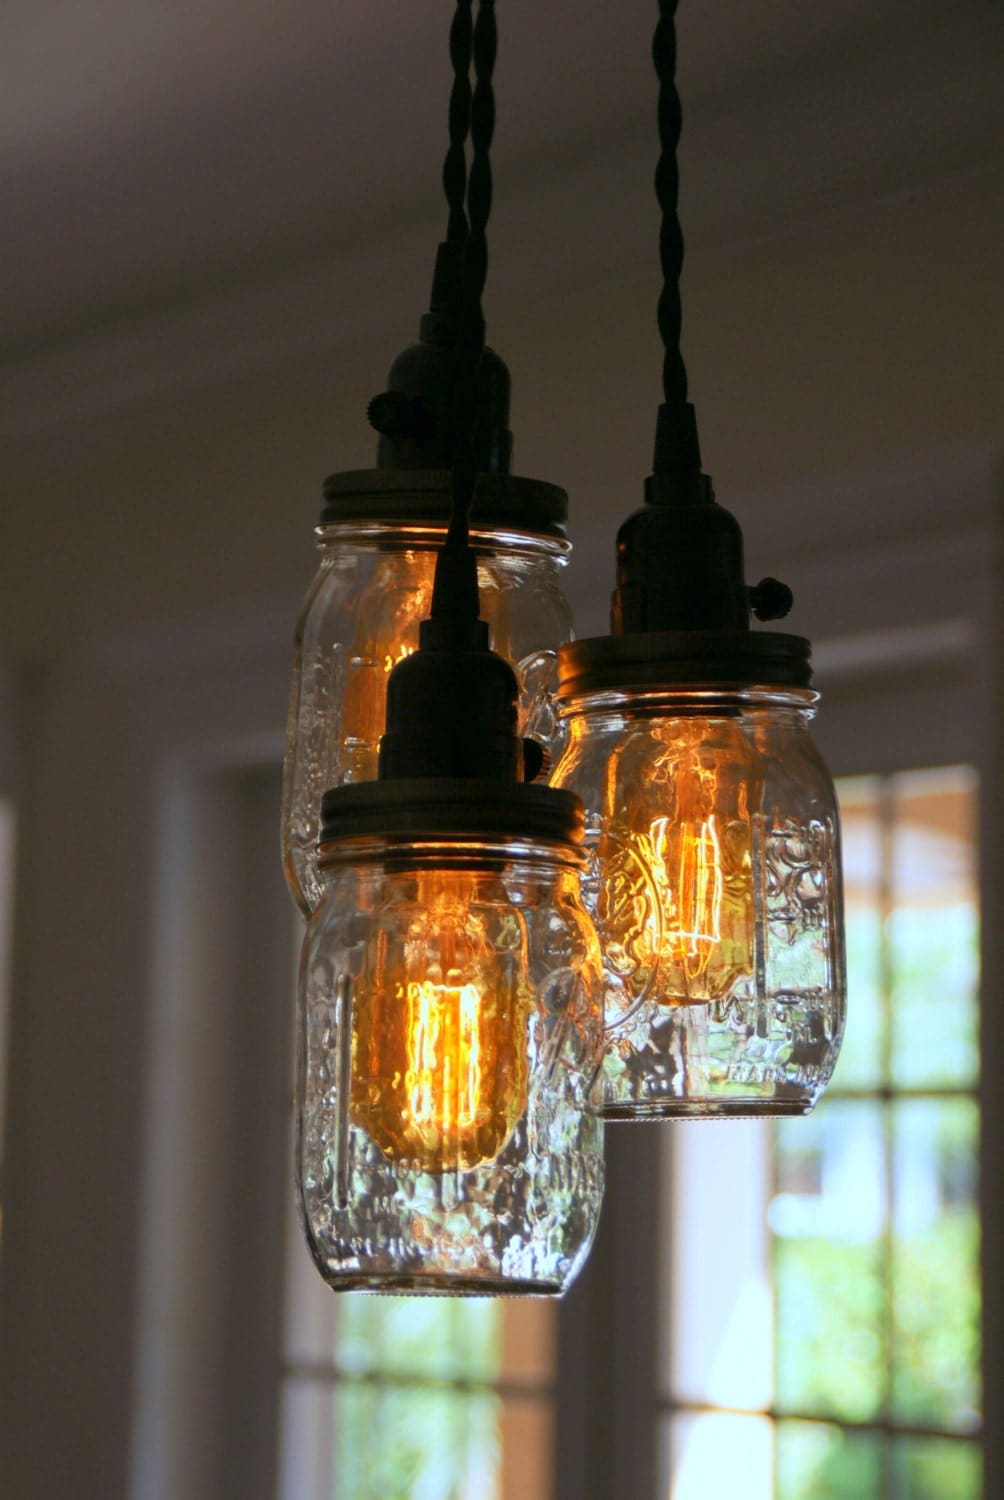 3 5 light mason jar chandelier clear pint. Black Bedroom Furniture Sets. Home Design Ideas